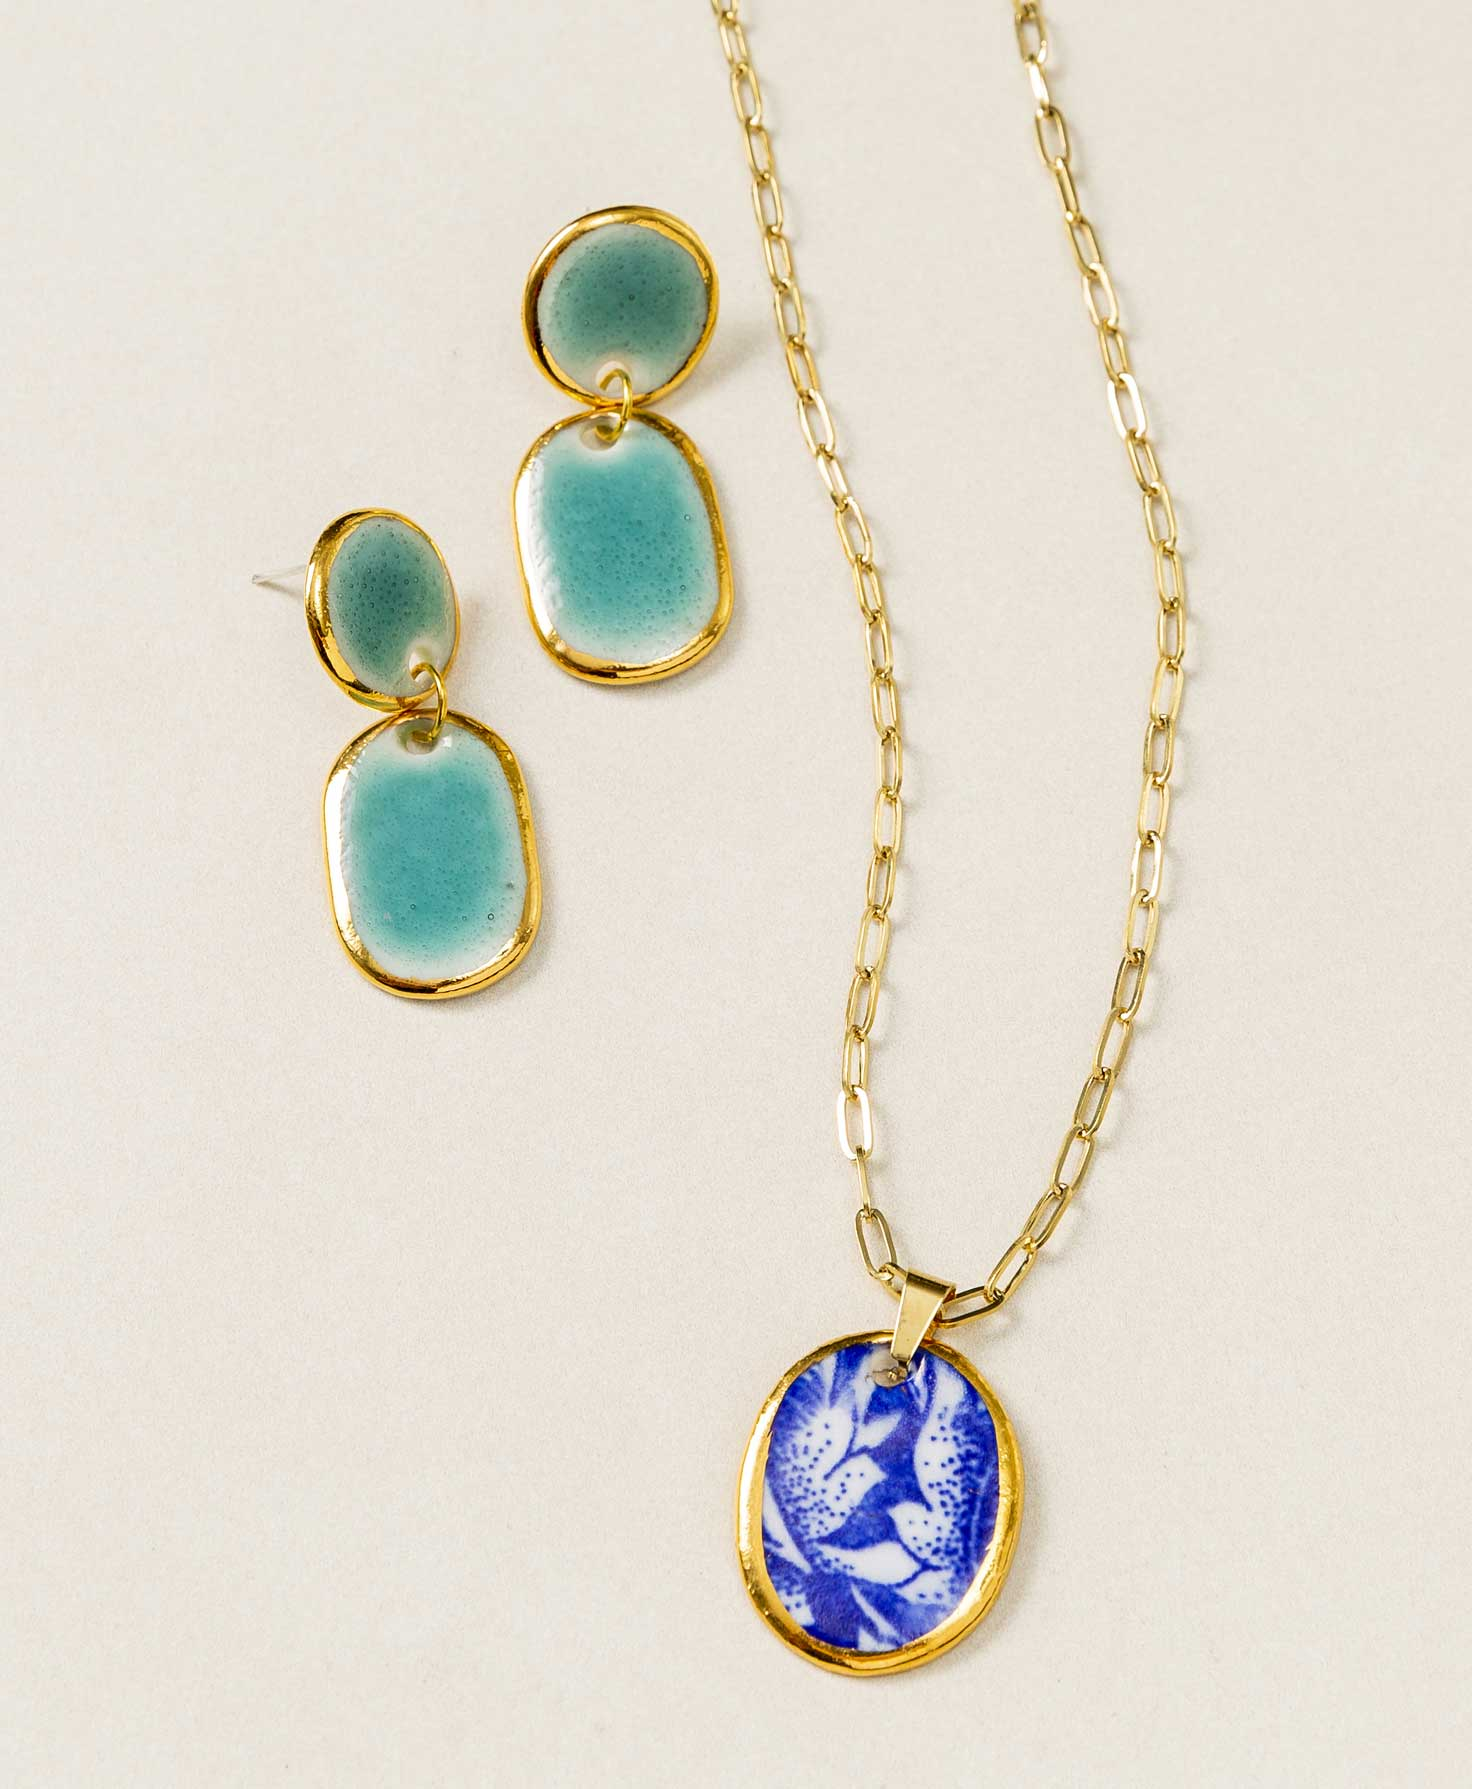 Three Thrive Necklaces lay next to each other, showing the variations in the blue and white pattern on each pendant. One necklace features a fern-like frond, and two others feature different kinds of floral imagery.